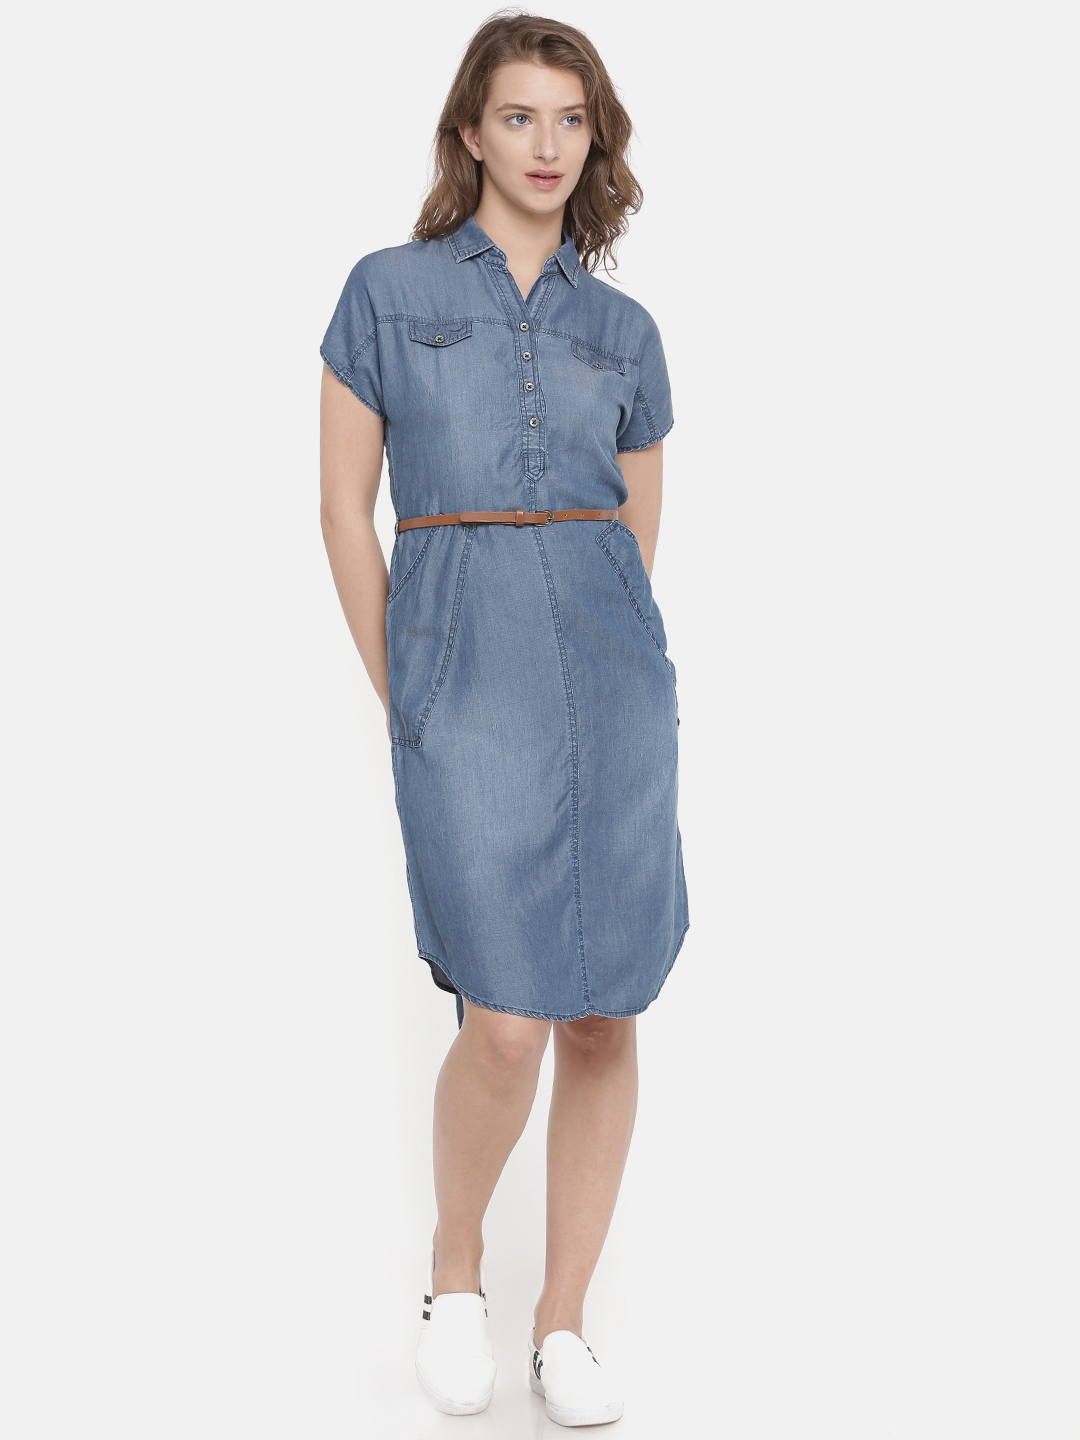 Buy Deal Jeans Women Blue Solid Chambray Shirt Dress Dresses For